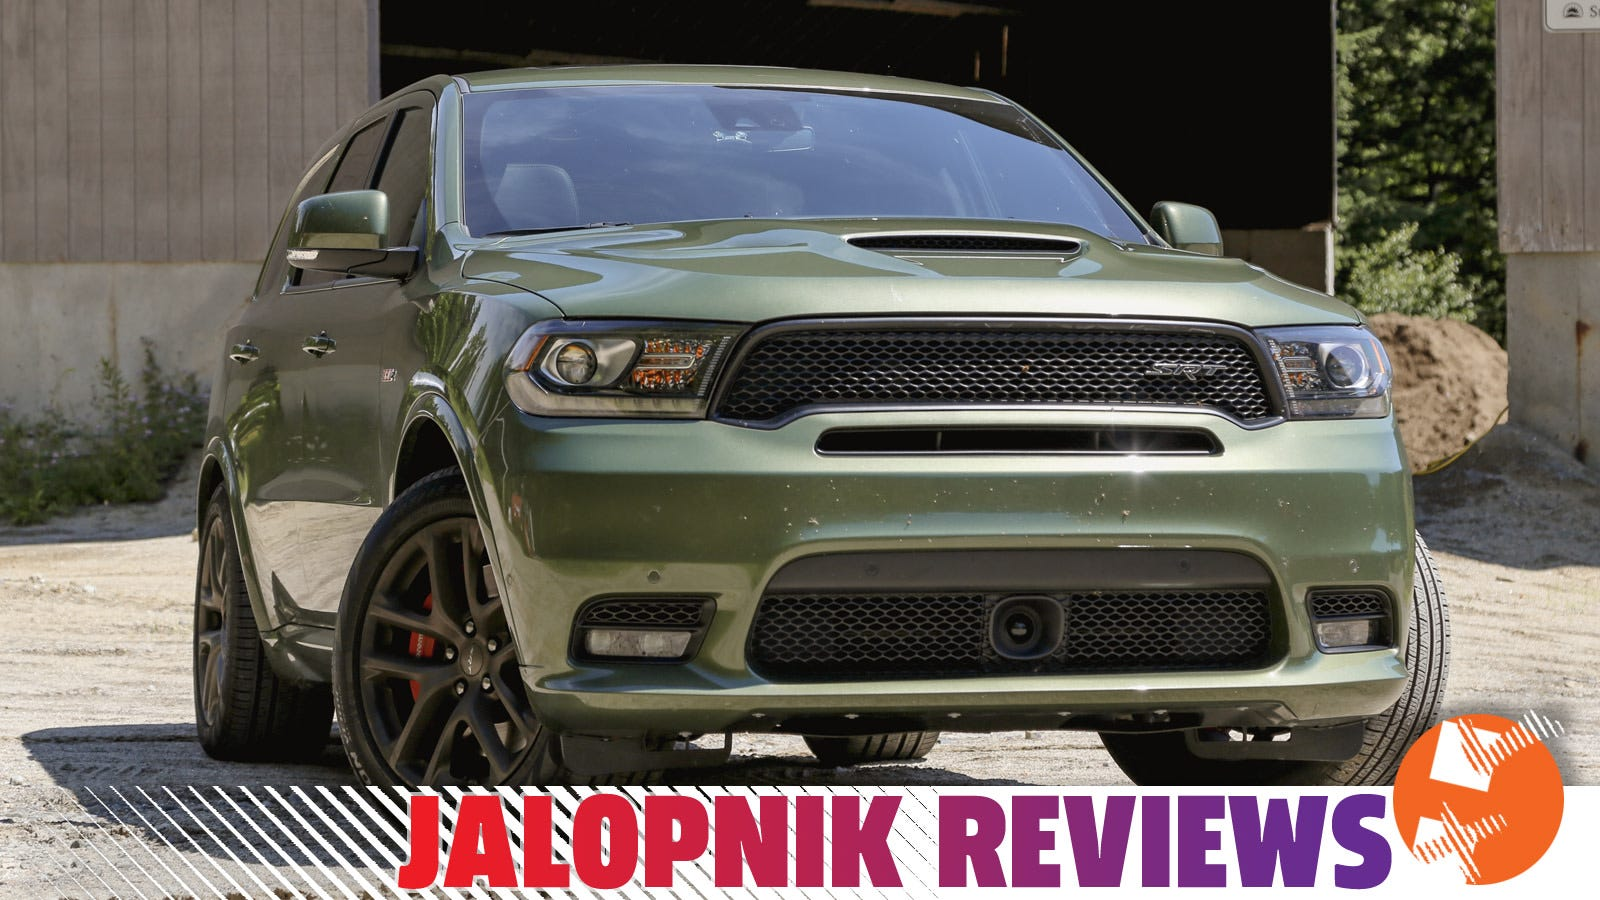 The 475-HP Dodge Durango SRT Is A Muscle Truck That's Ready To Haul